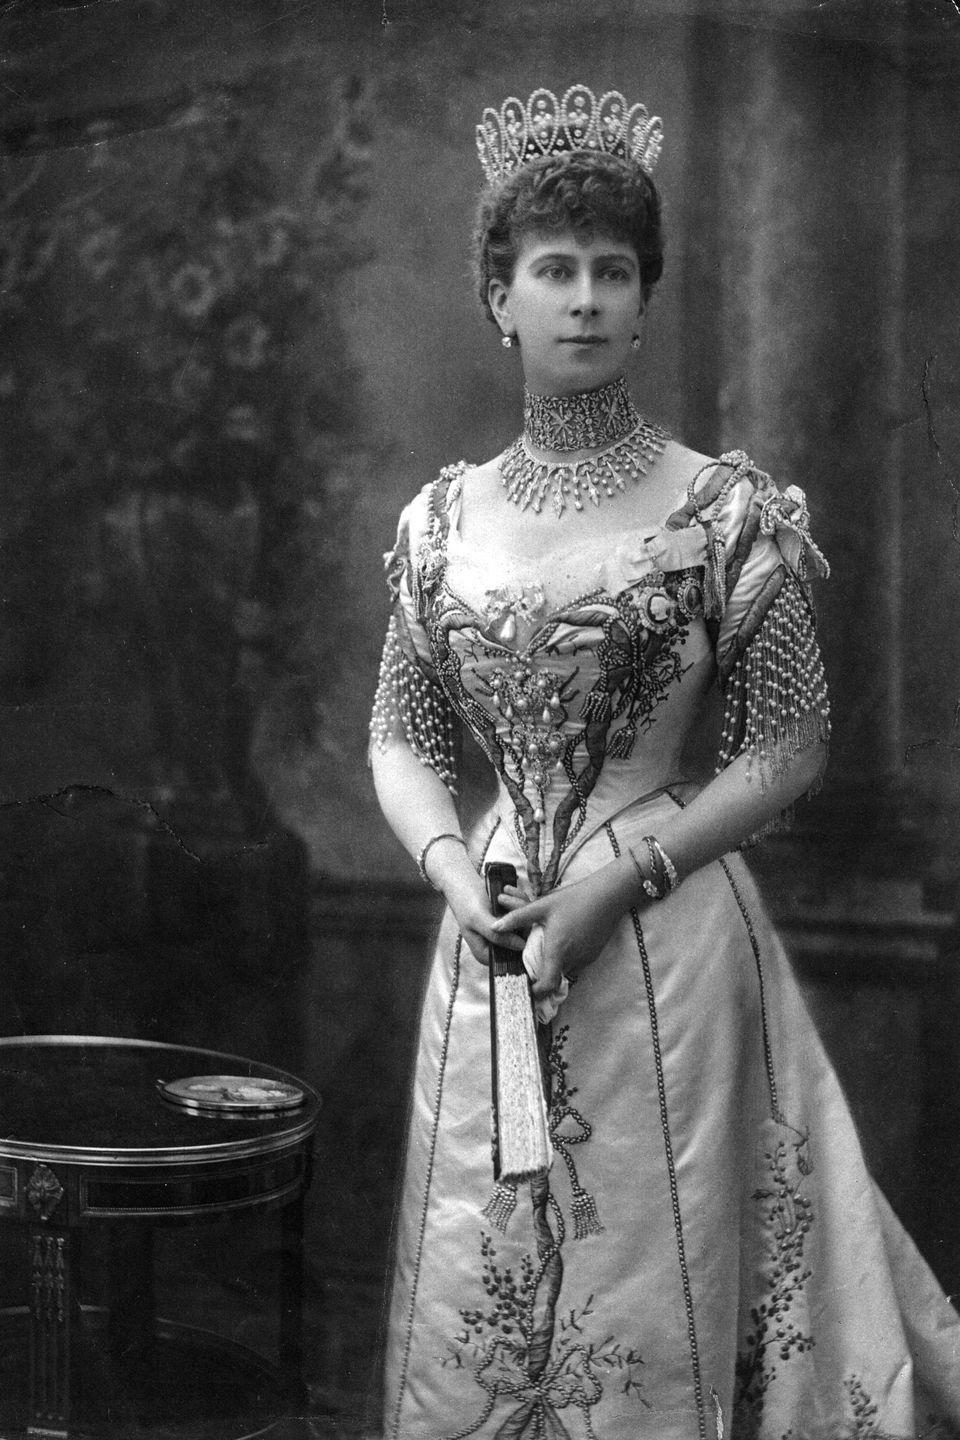 "<p>In recent decades, collars have fallen out of favor with the royals, who've preferred to don other necklace styles—and that's a shame, because jewels like the Love Trophy Collar are simply stunning. This piece was made for Queen Mary in 1901 by Garrard, according to the <a href=""http://www.thecourtjeweller.com/2014/05/queen-marys-love-trophy-collar.html"" rel=""nofollow noopener"" target=""_blank"" data-ylk=""slk:Court Jeweller"" class=""link rapid-noclick-resp"">Court Jeweller</a>, and used diamonds owned by Mary's grandmothe (Princess Augusta of Hesse-Kassel) and her aunt (Princess Augusta of Cambridge), that were then set in gold. </p>"